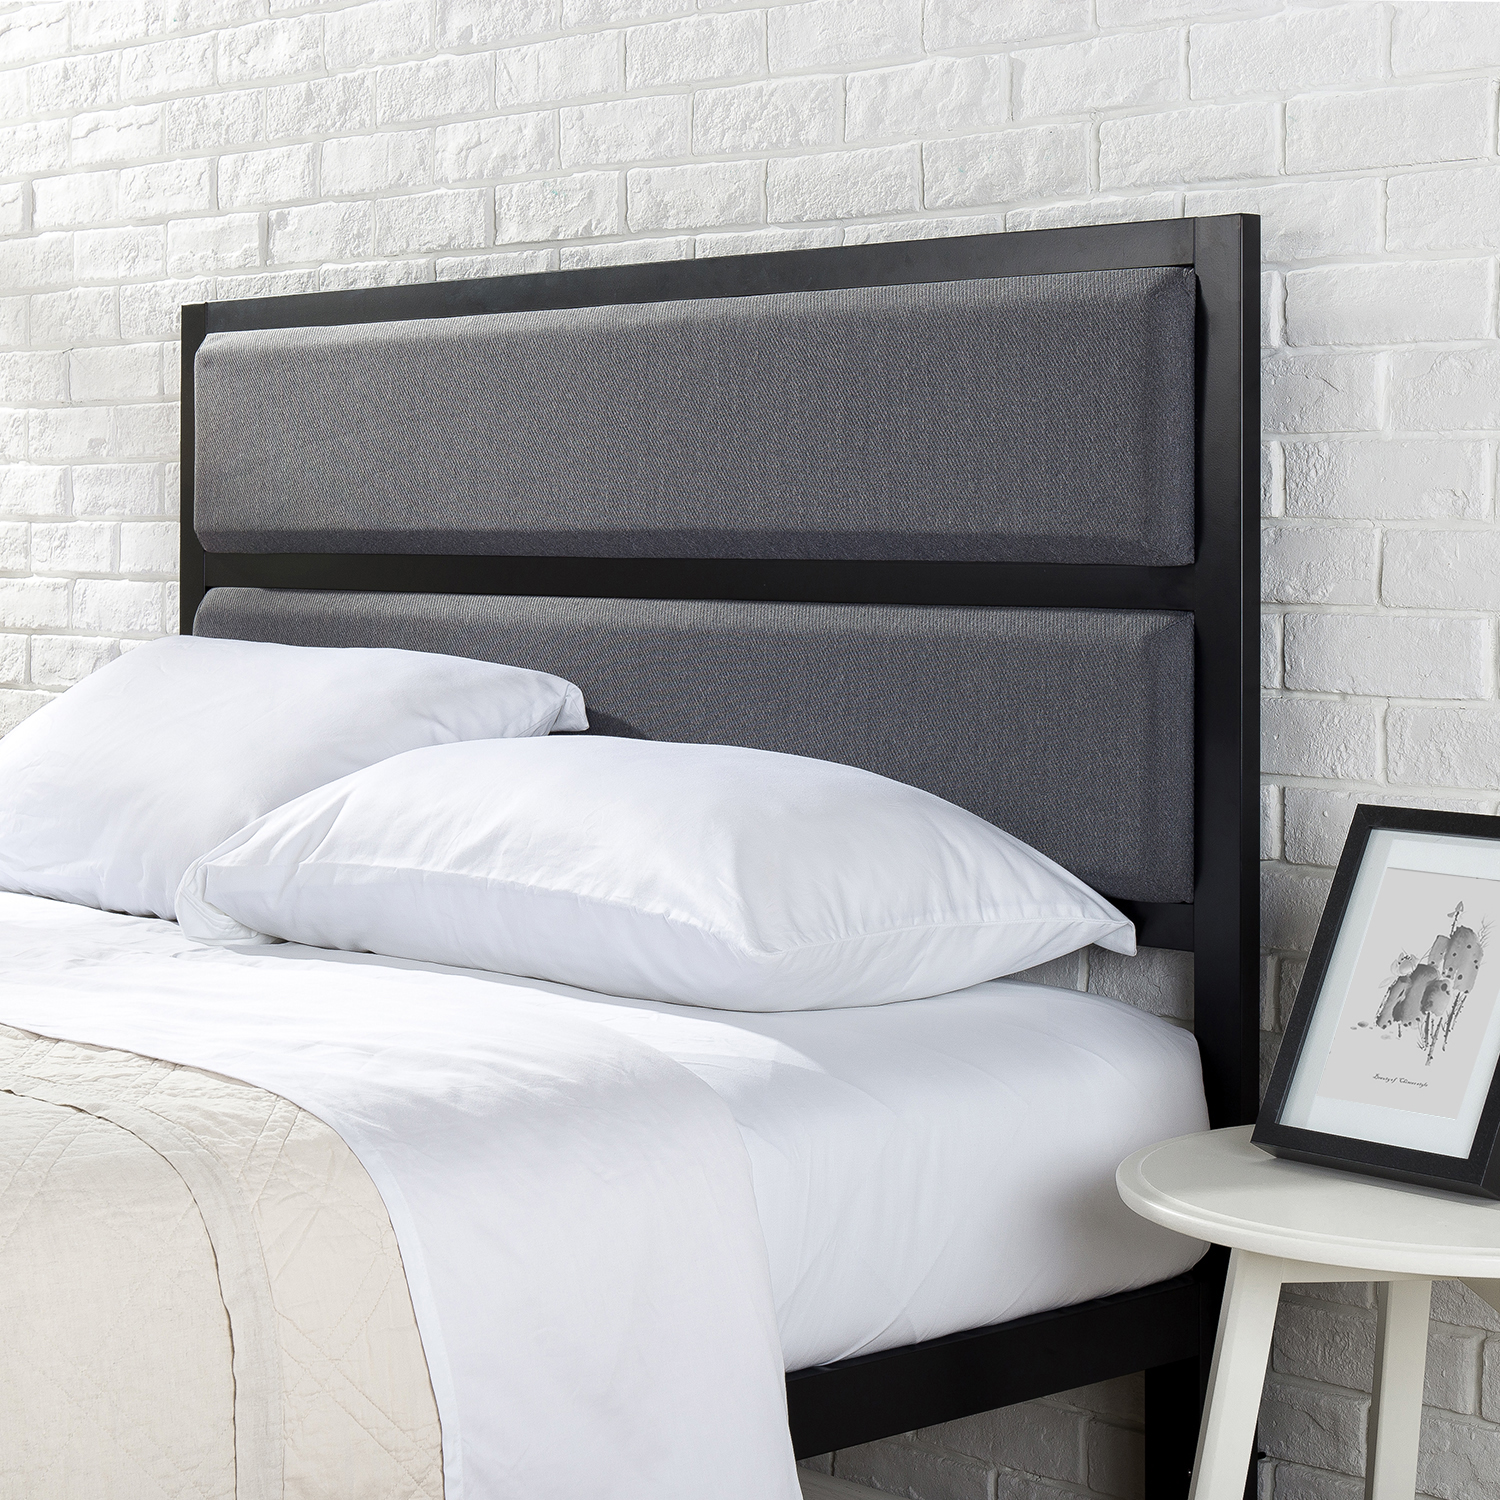 Mainstays Upholstered Metal Headboard, Multiple Sizes